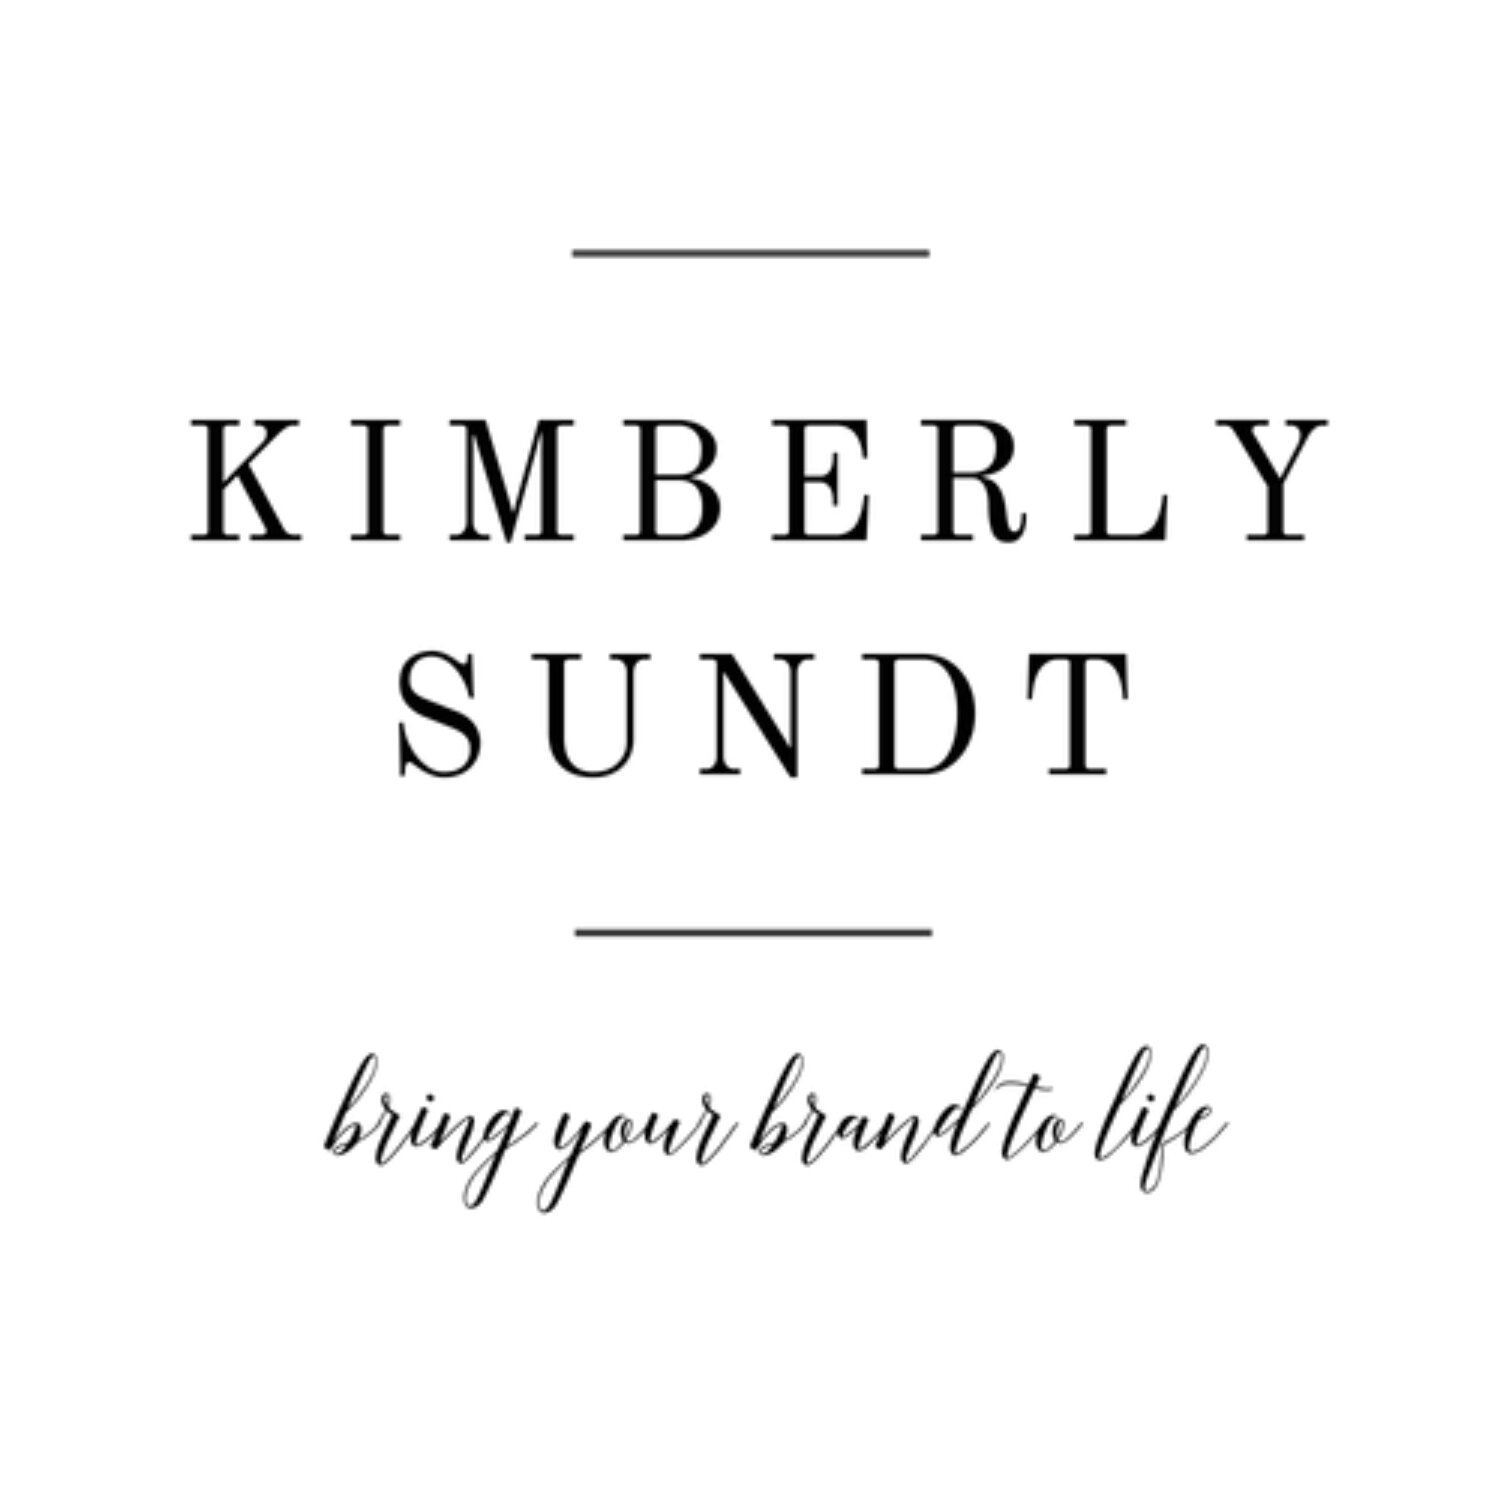 Kimberly Sundt | Inspired Hospitality, Boutique Hotel Marketing and Consultation